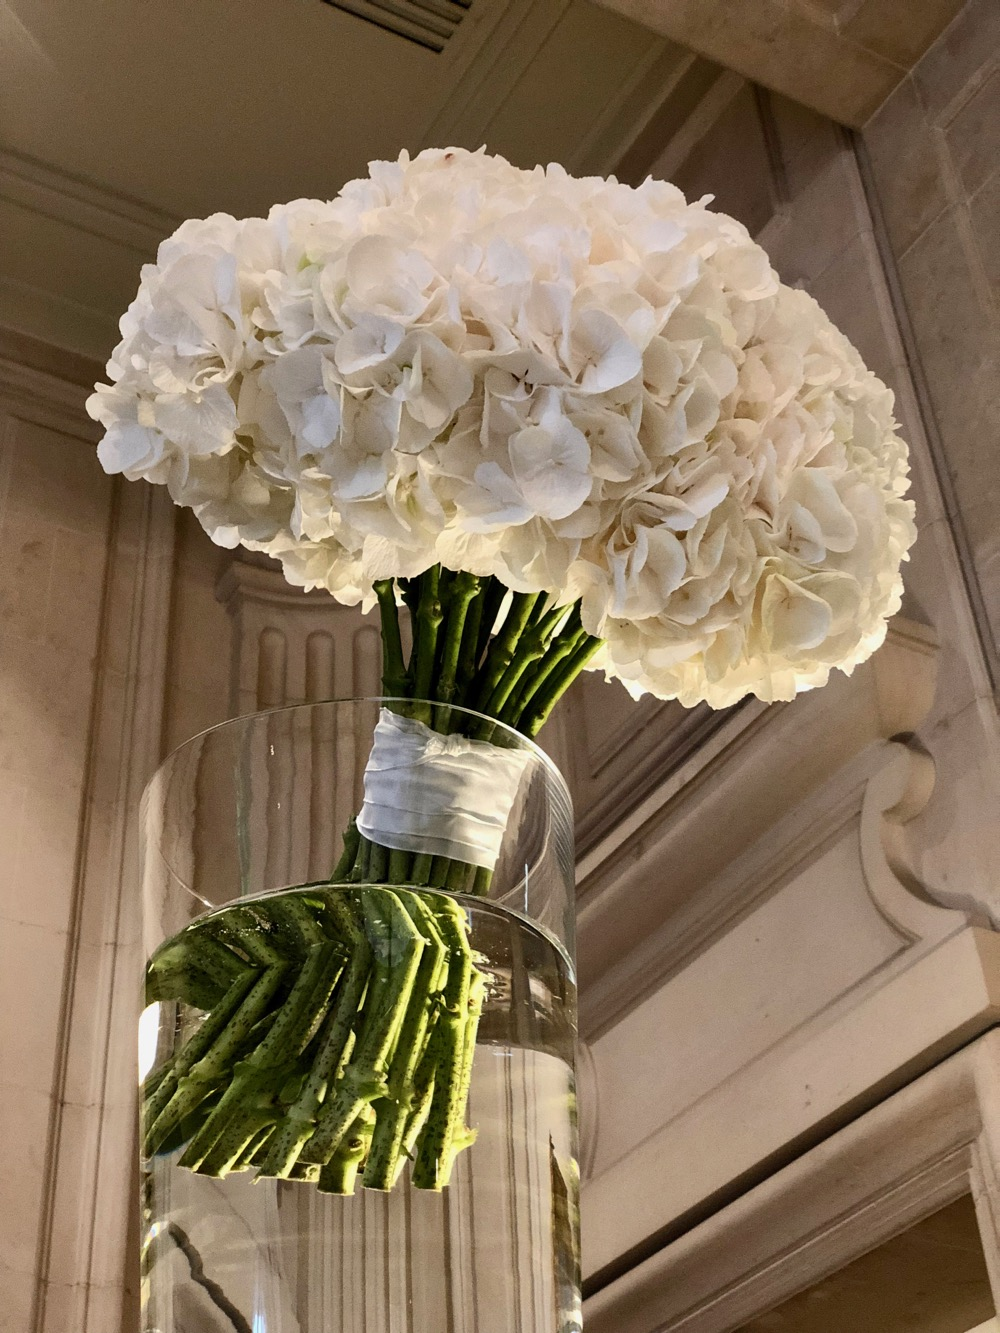 Classy colibri at the Four Seasons Hotel George V Paris, flower creations by Jeff Leatham ©classycolibr